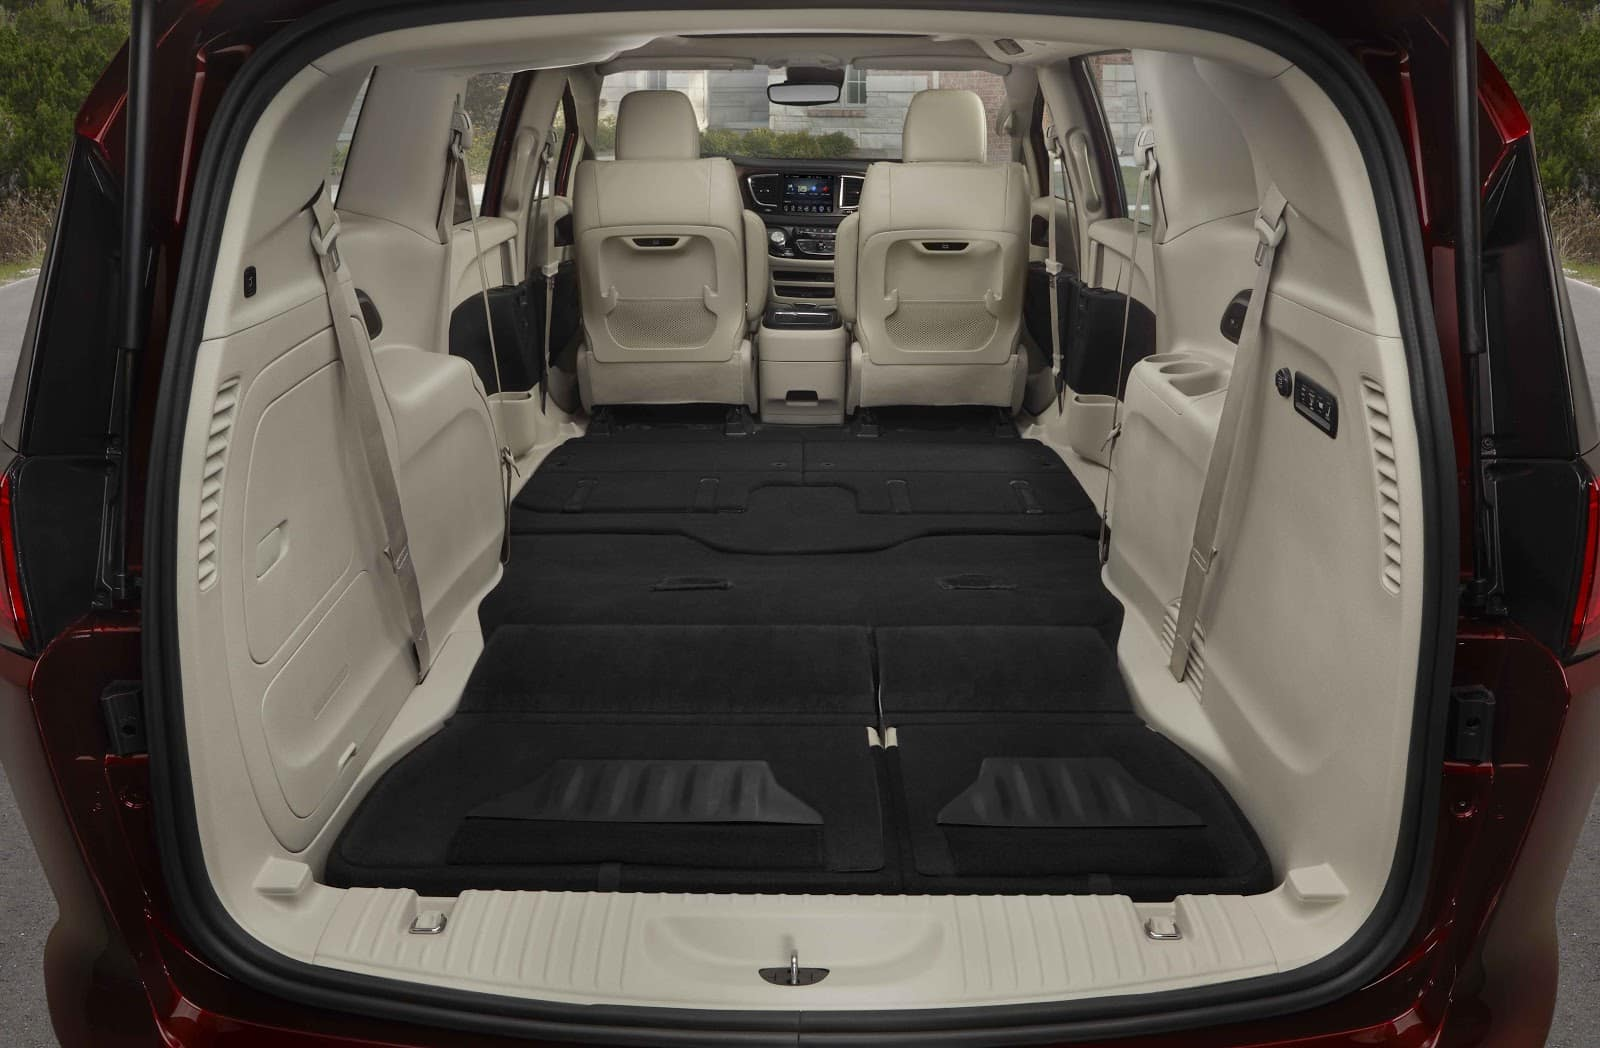 interior of 2019 chrysler pacifica folded down to show dynamic storage space